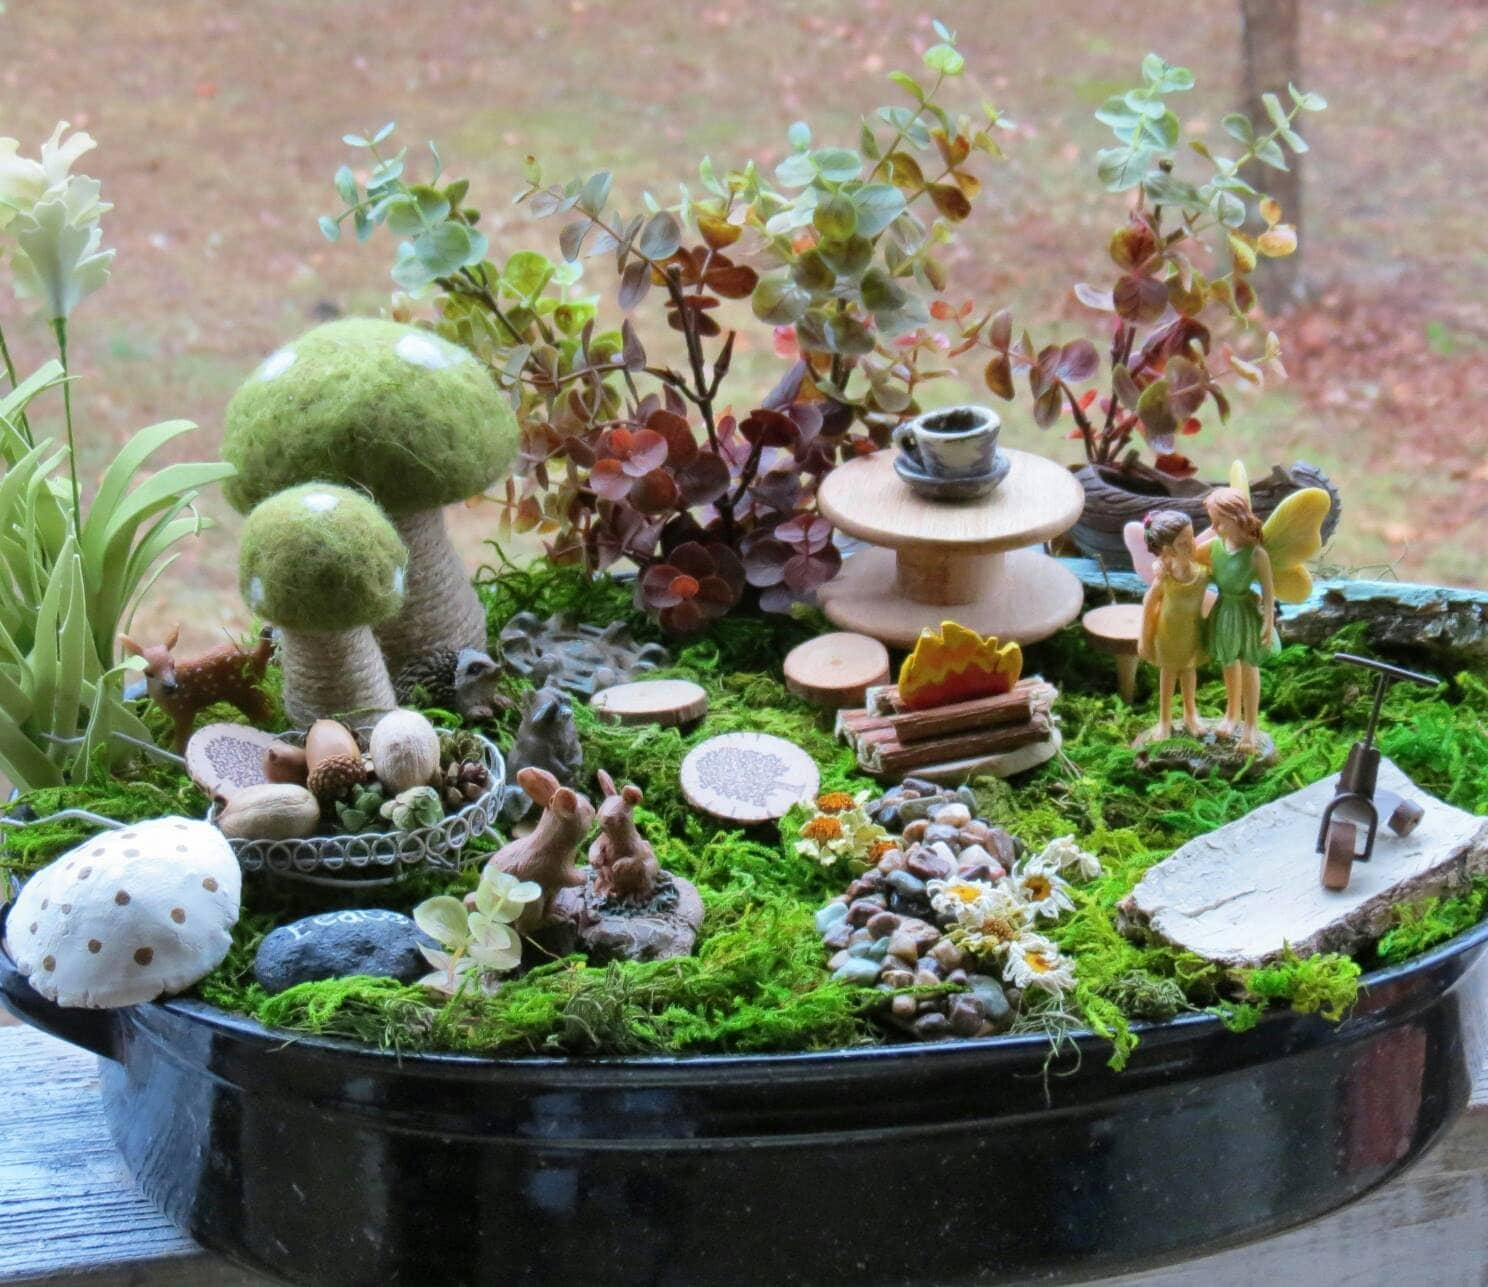 Complete Fairy Garden Kit with Container, Woodland Theme, Handmade Items, Unique. Tasteful and Adorable, FREE shipping